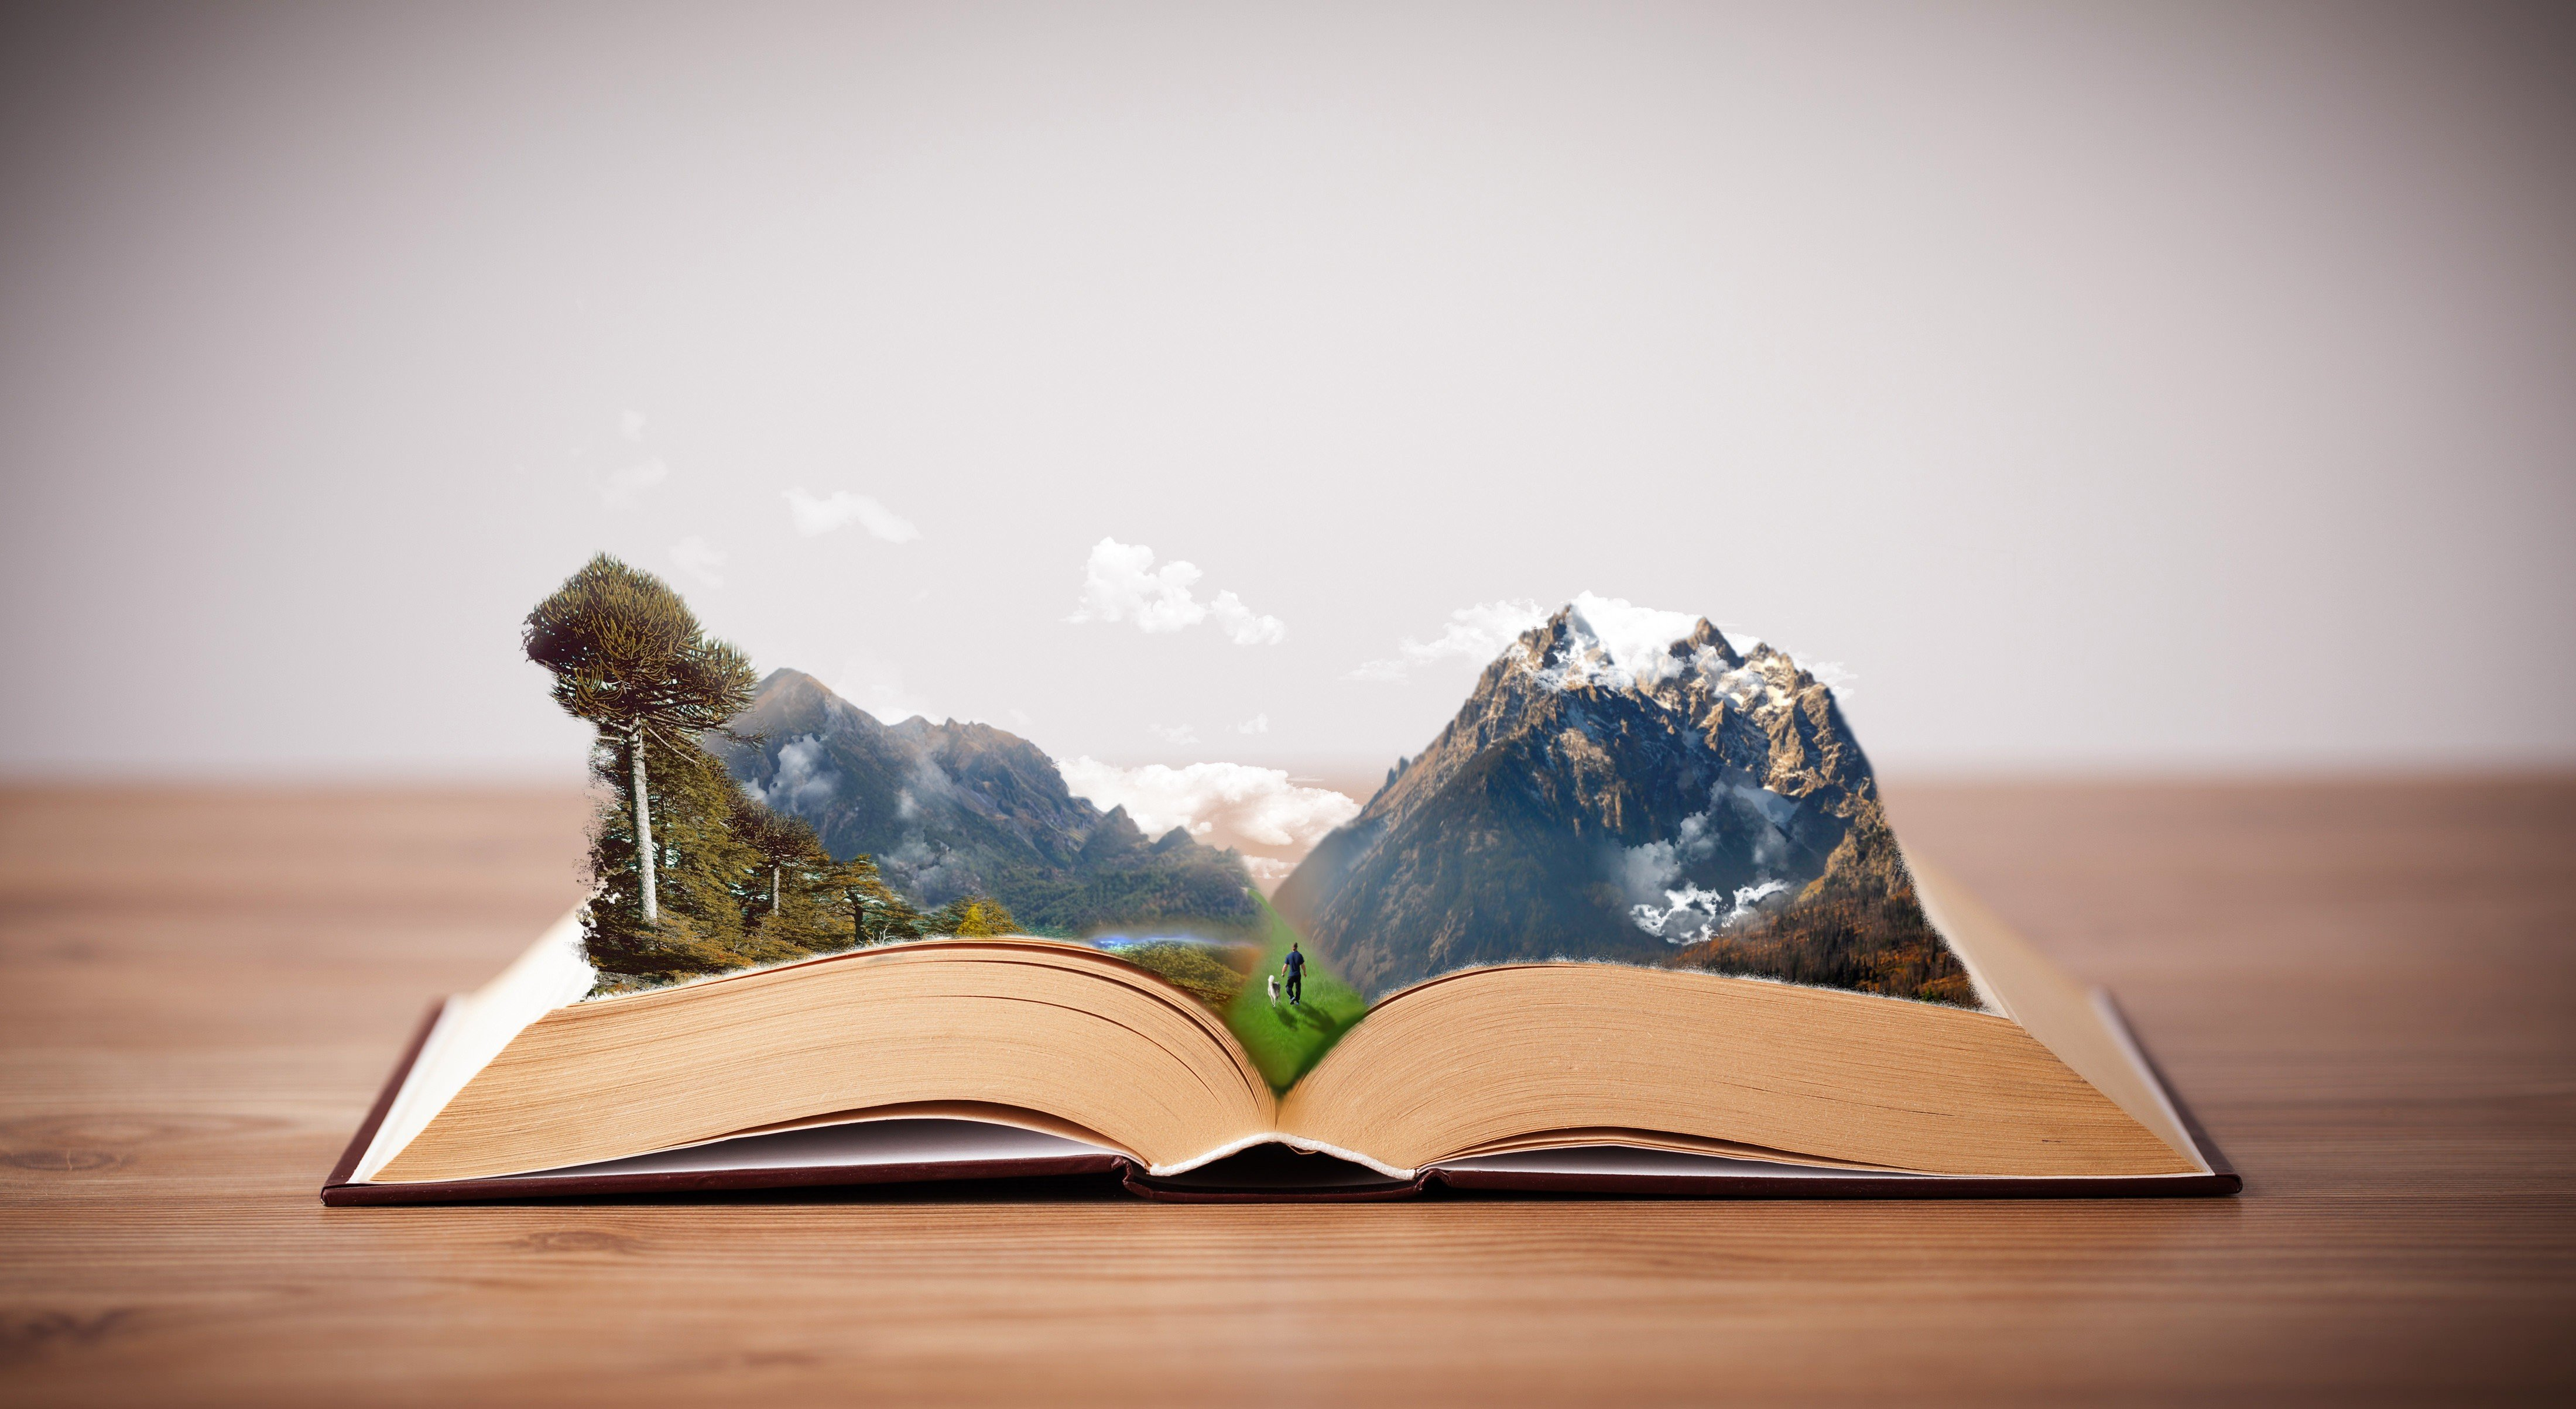 Book Art Hd Wallpaper: Books, Mountains, Photoshop, Imagination, Peaceful HD